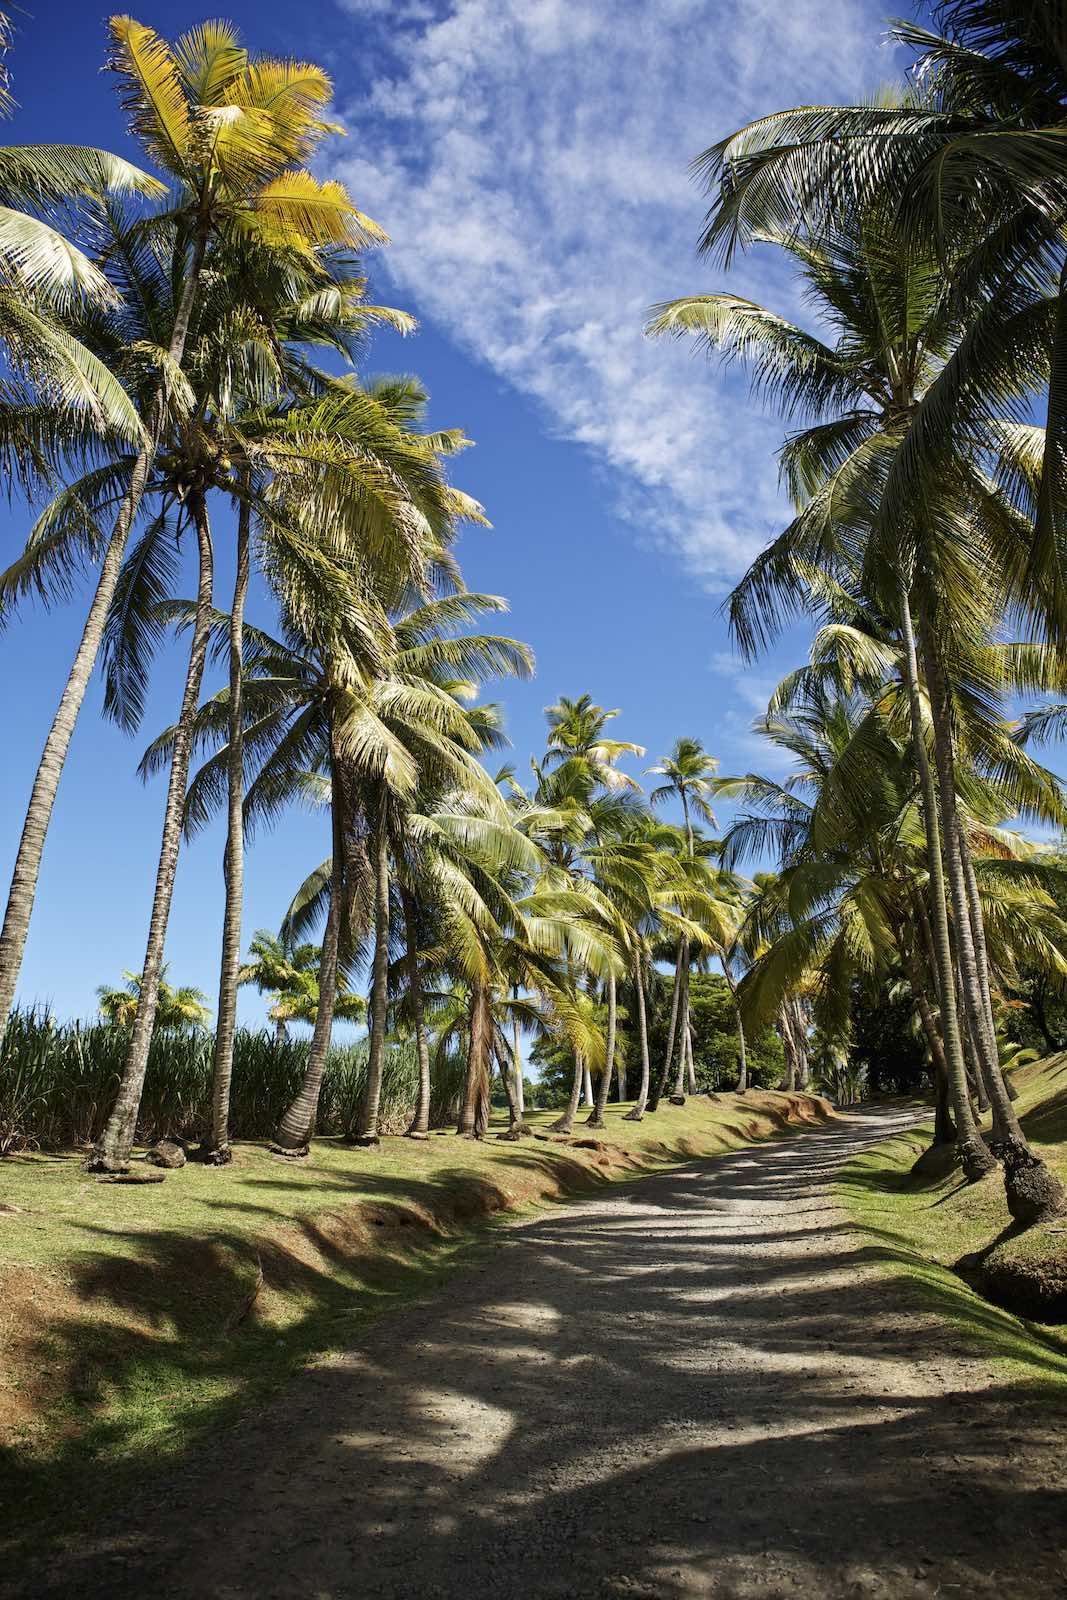 Jody Horton Photography - A sunny, dirt road lined with towering palm trees.